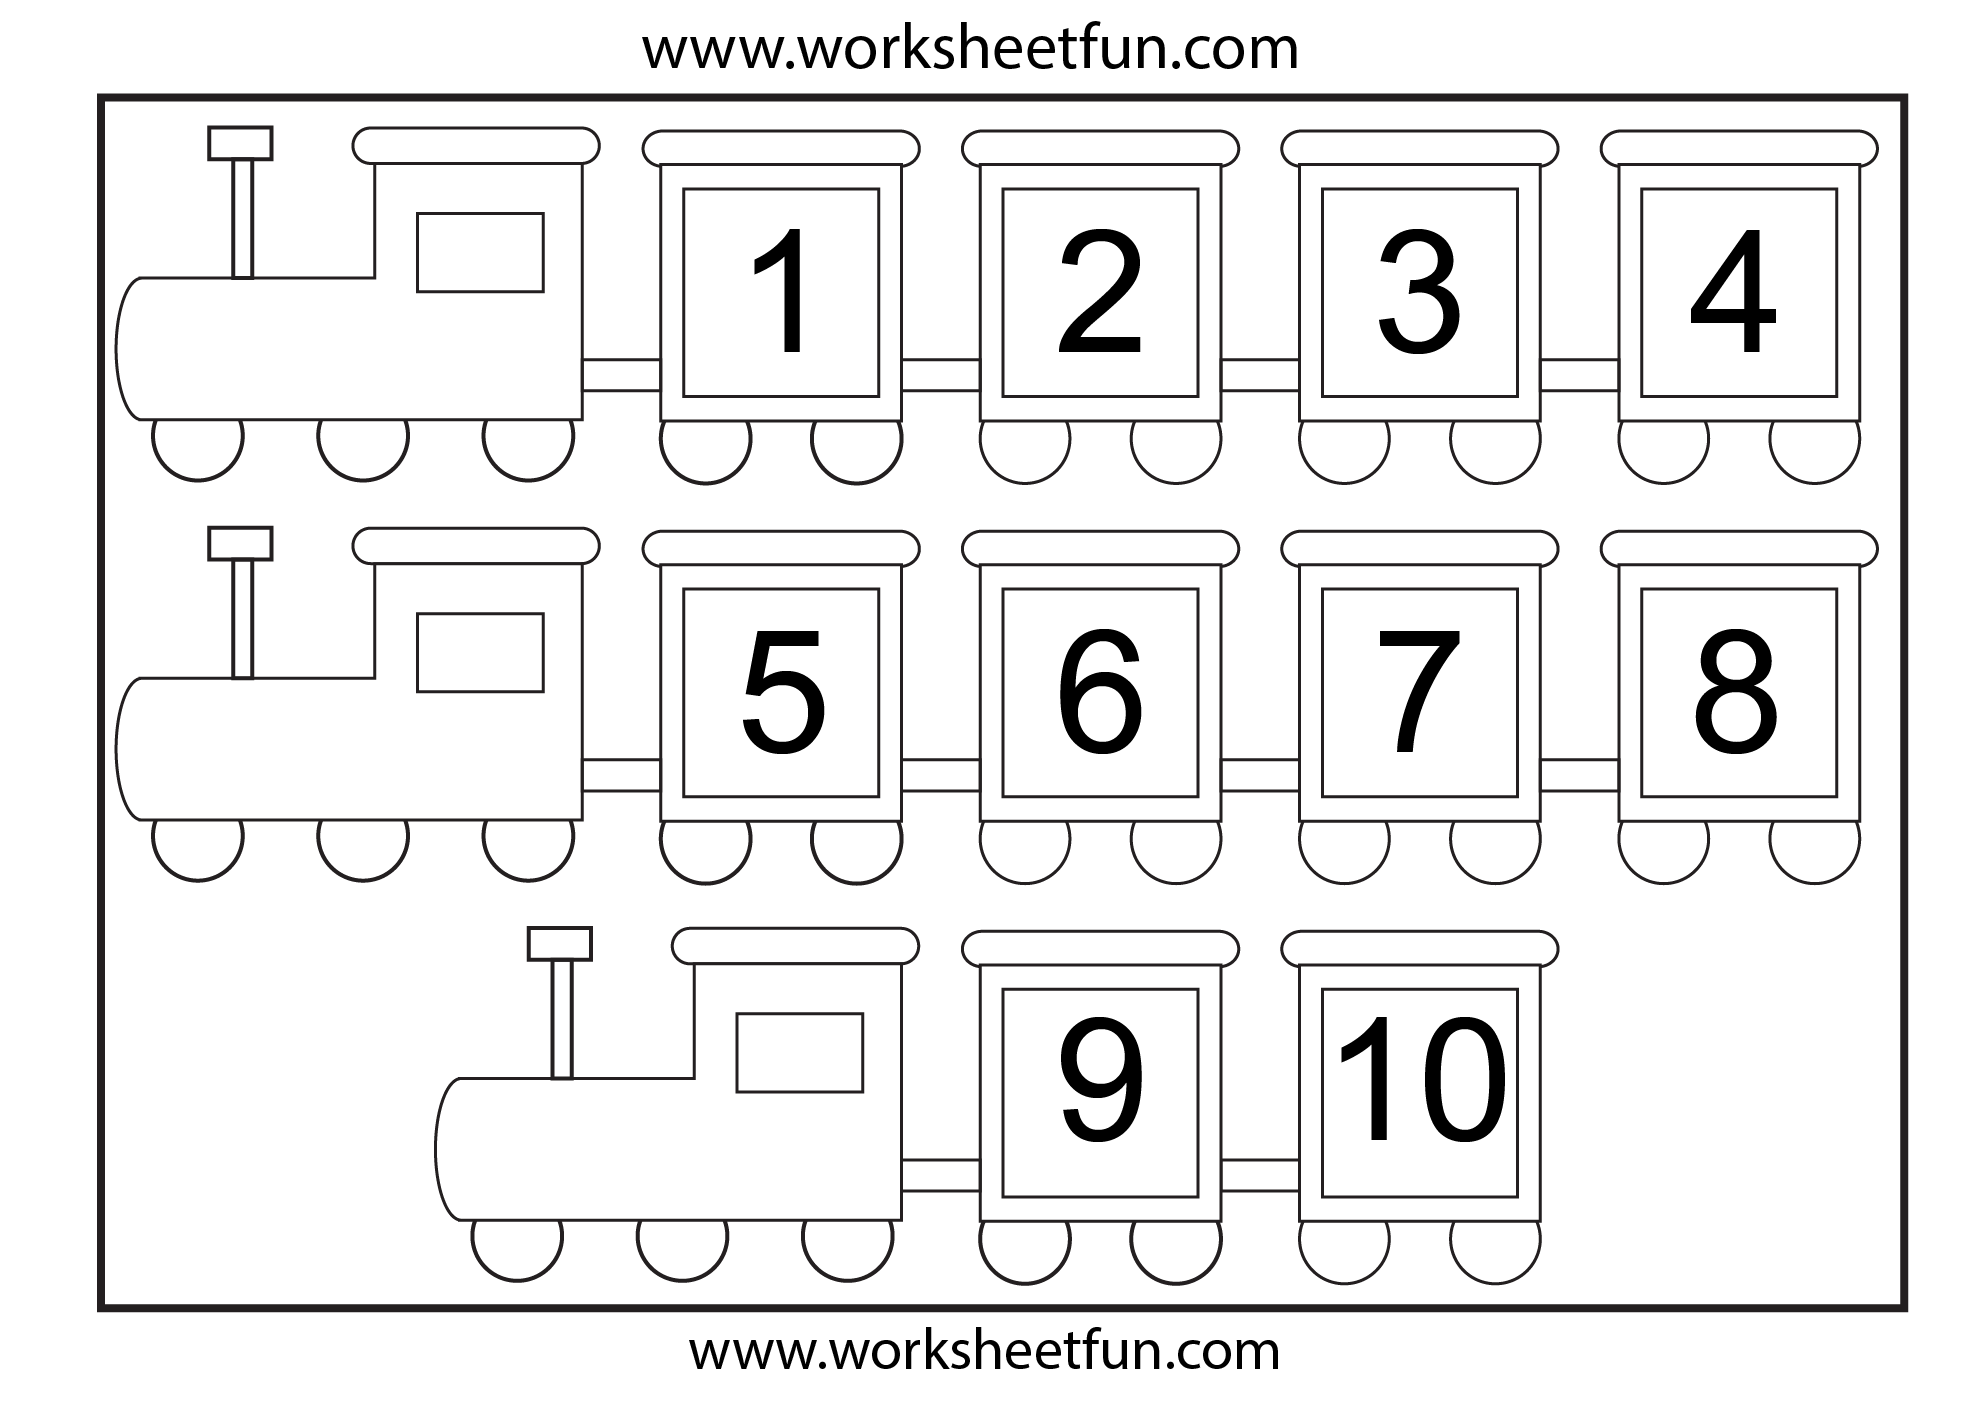 missing number worksheet: NEW 188 MISSING NUMBER